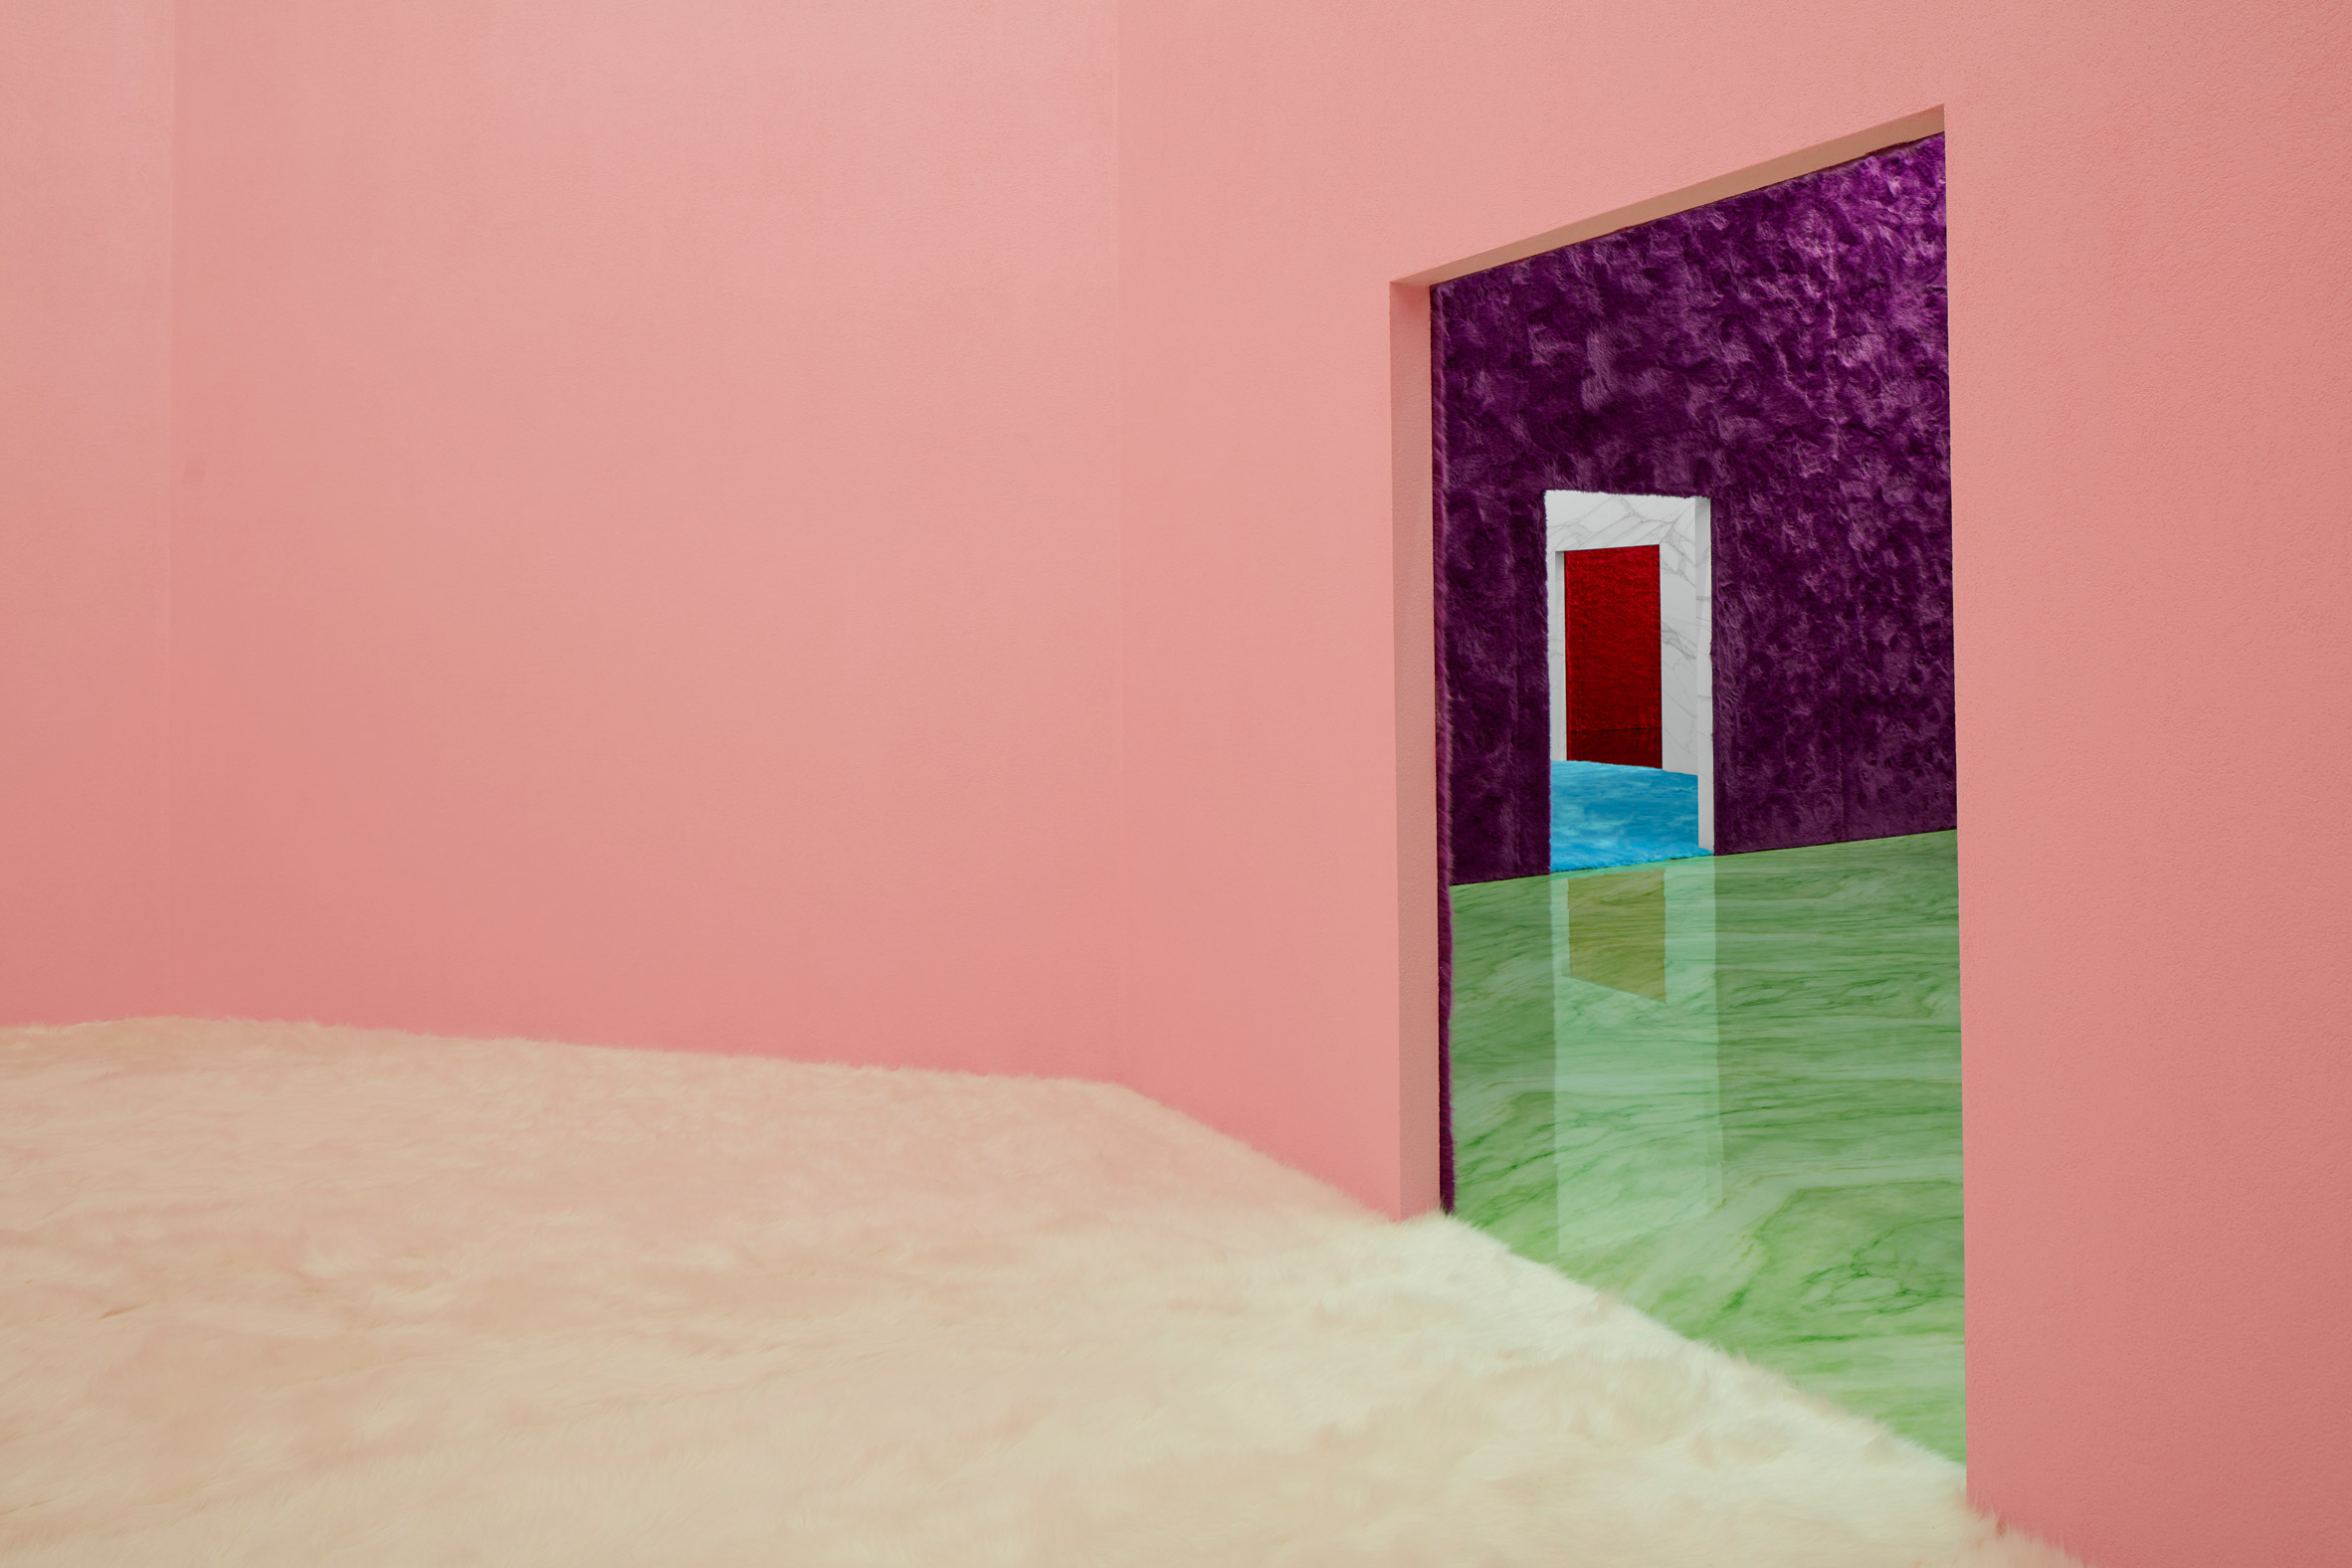 pink room at Prada FW21 Menswear show by AMO and Rem Koohaal